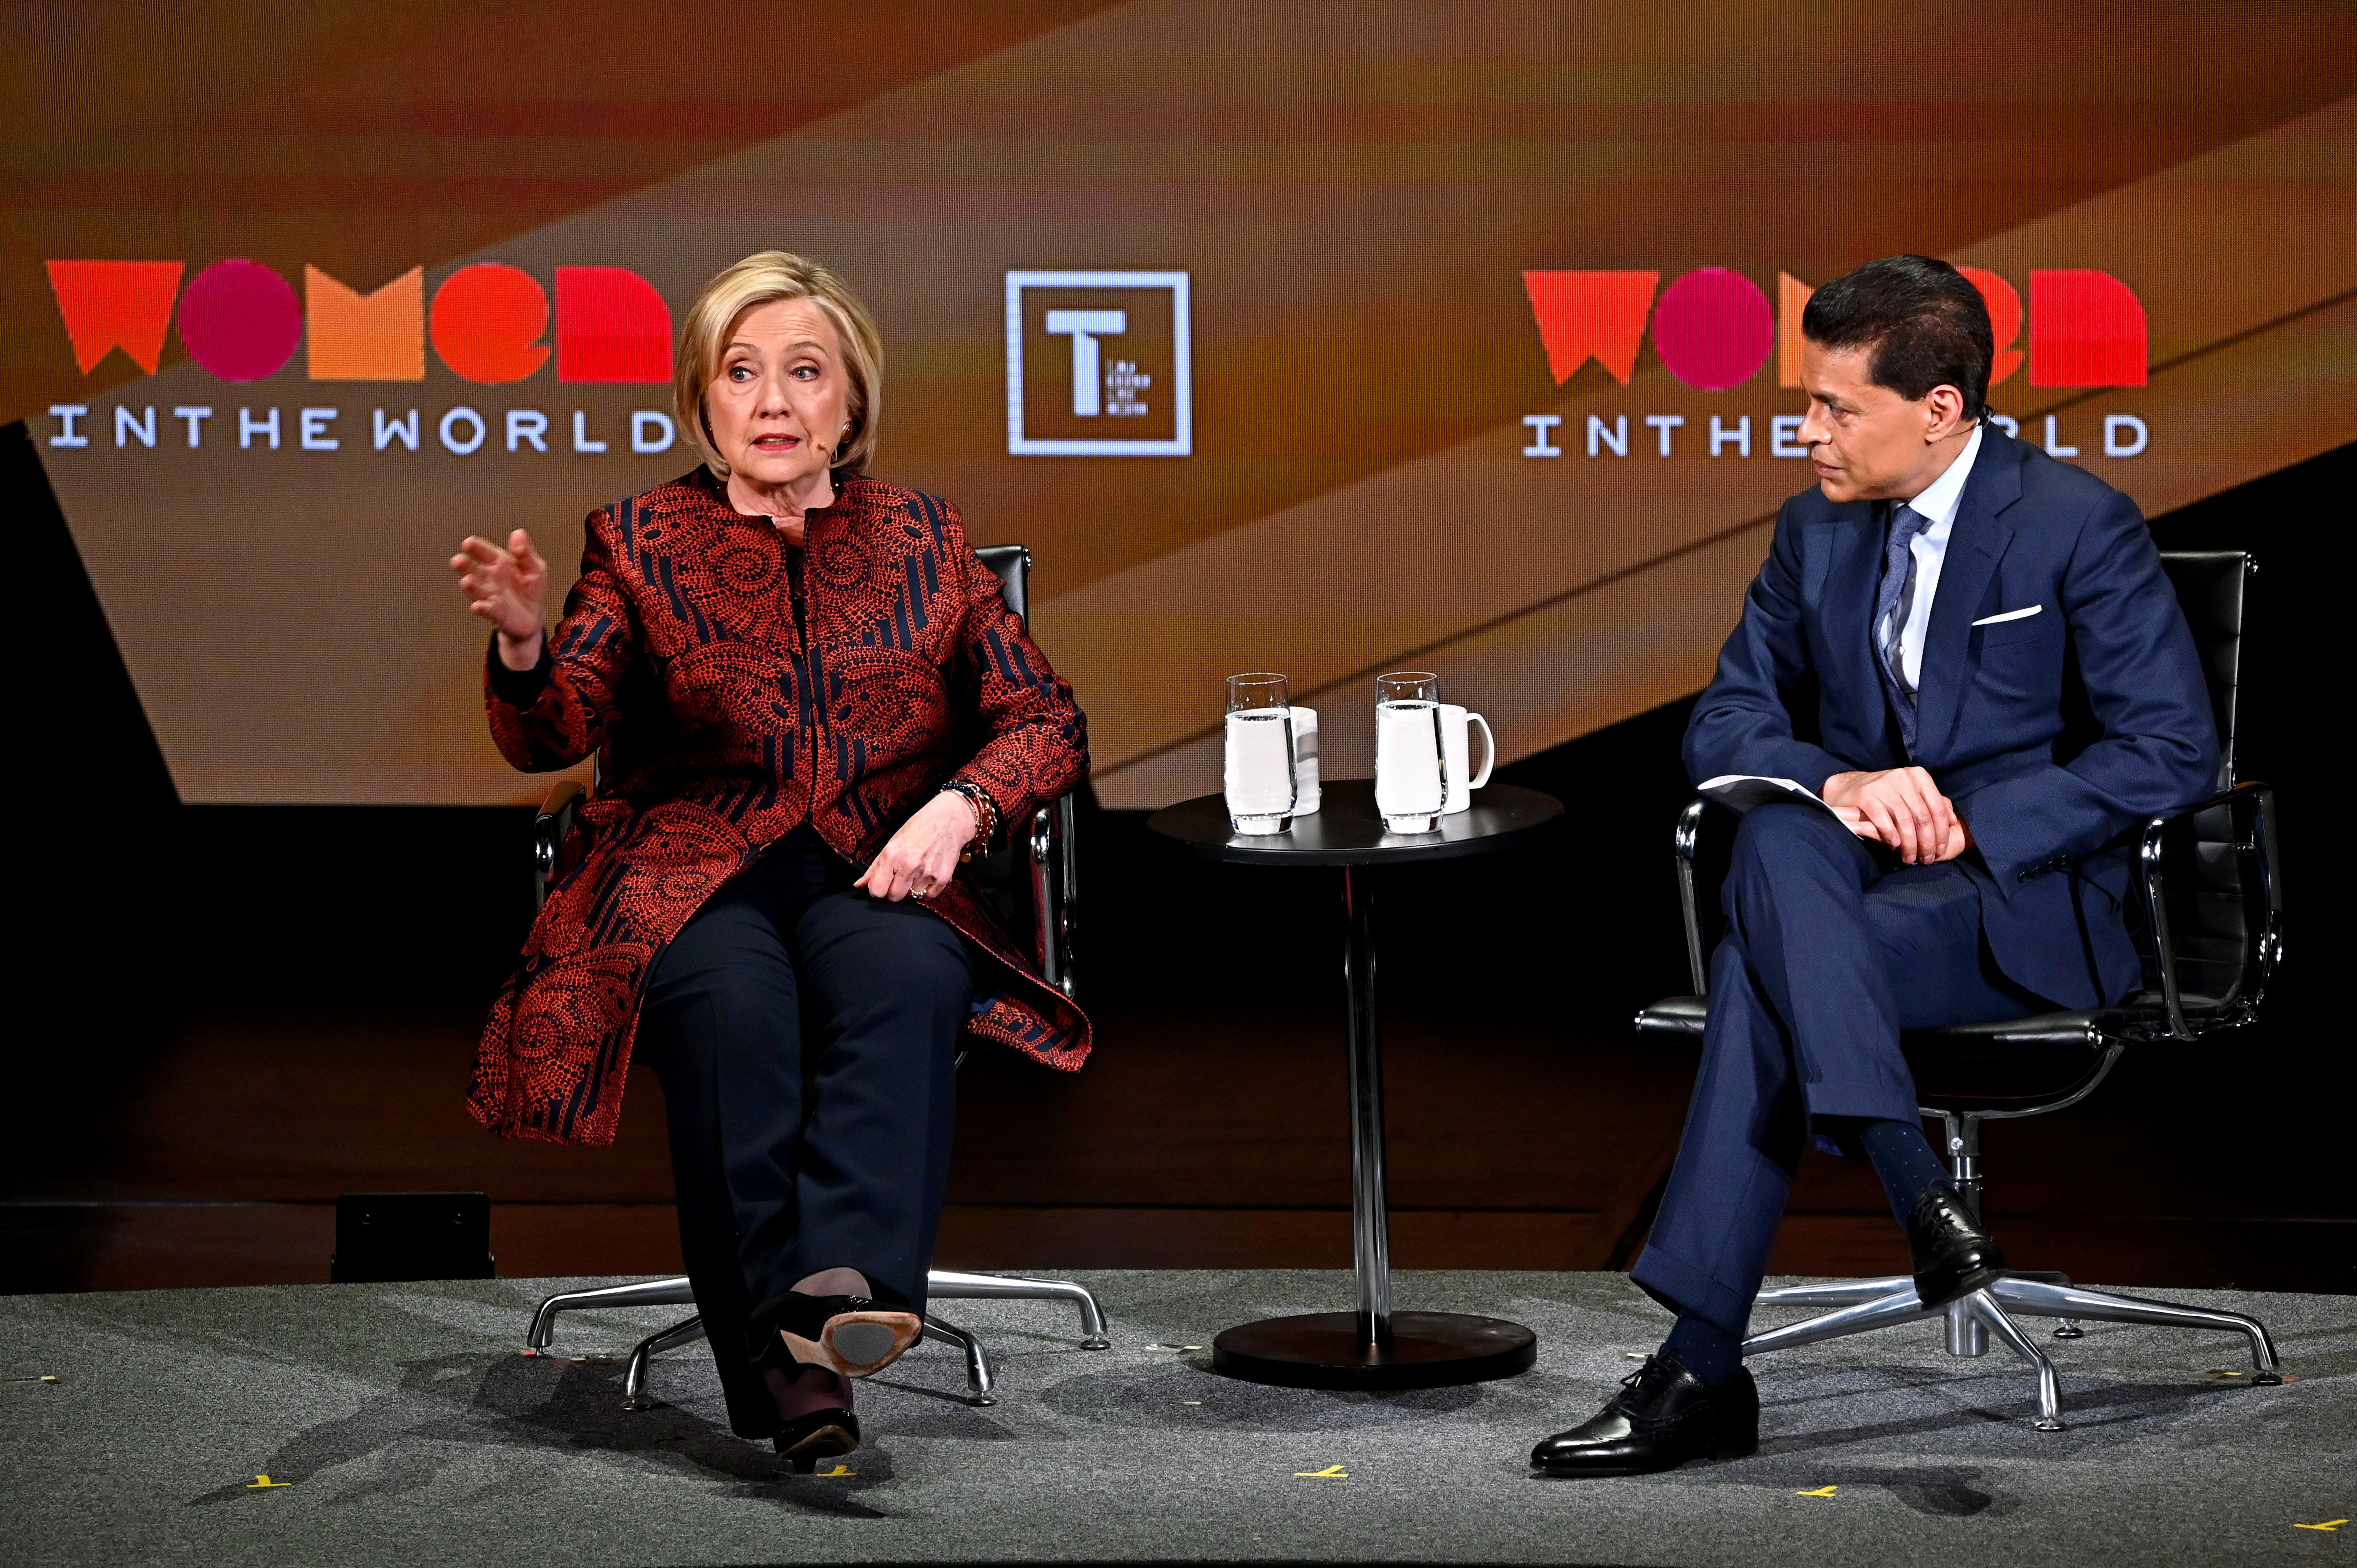 NEW YORK, NEW YORK - APRIL 12: Hillary Clinton and Fareed Zakaria speak during the 10th Anniversary Women In The World Summit at David H. Koch Theater at Lincoln Center on April 12, 2019 in New York City. (Photo by Mike Coppola/Getty Images)